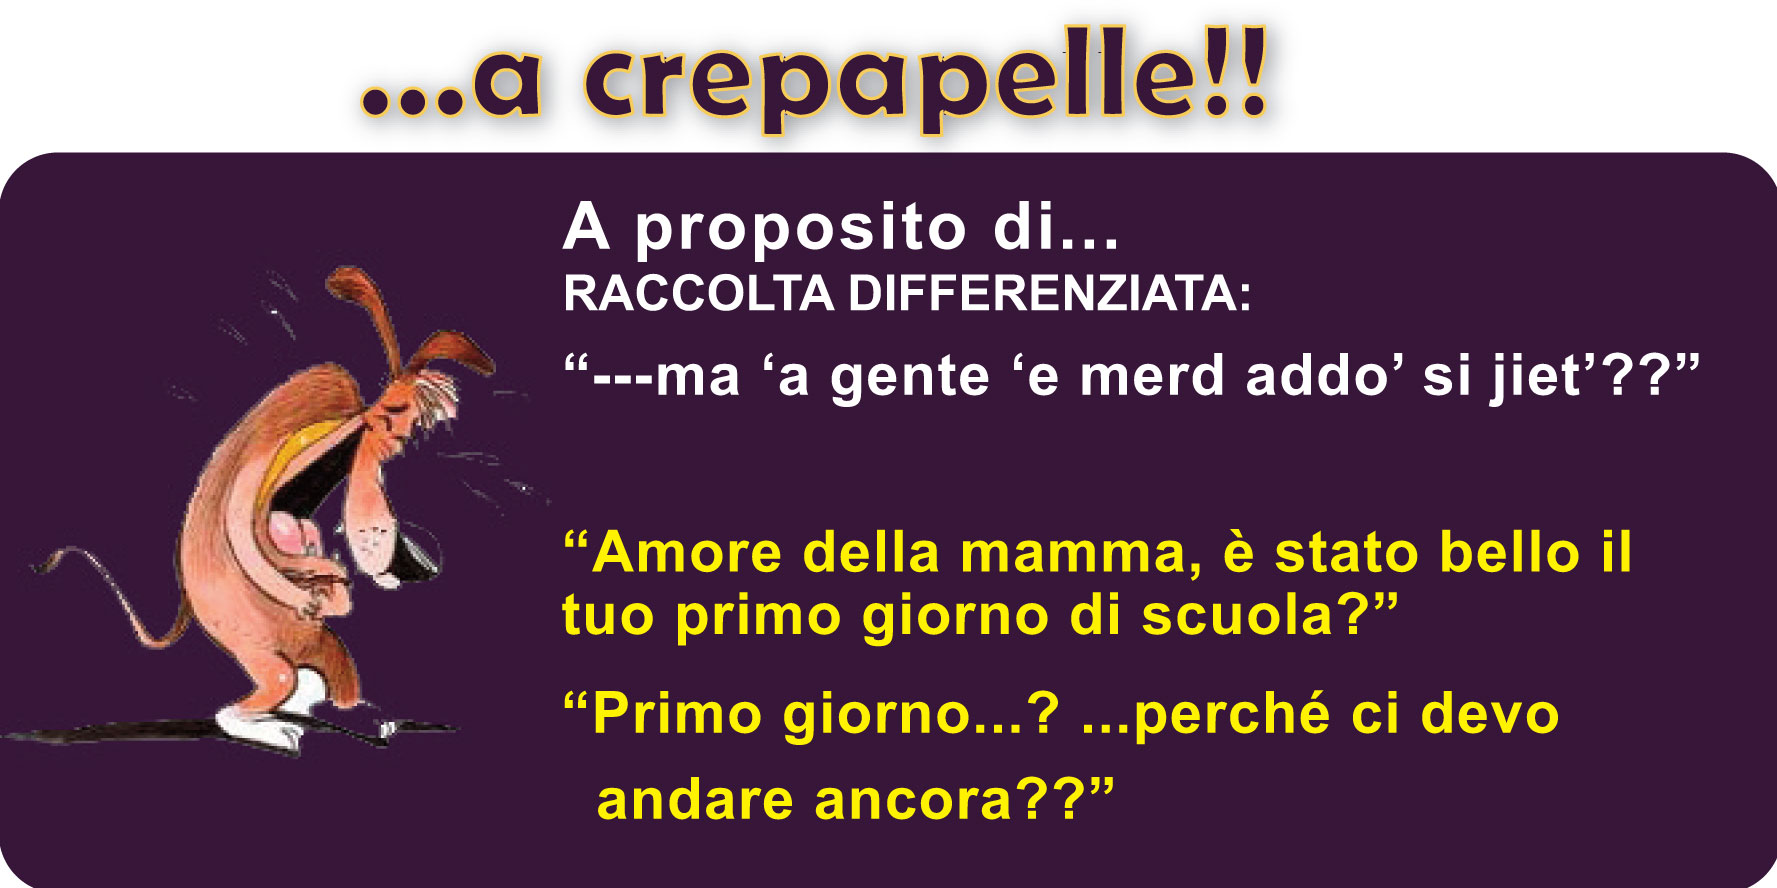 ...A CREPAPELLE